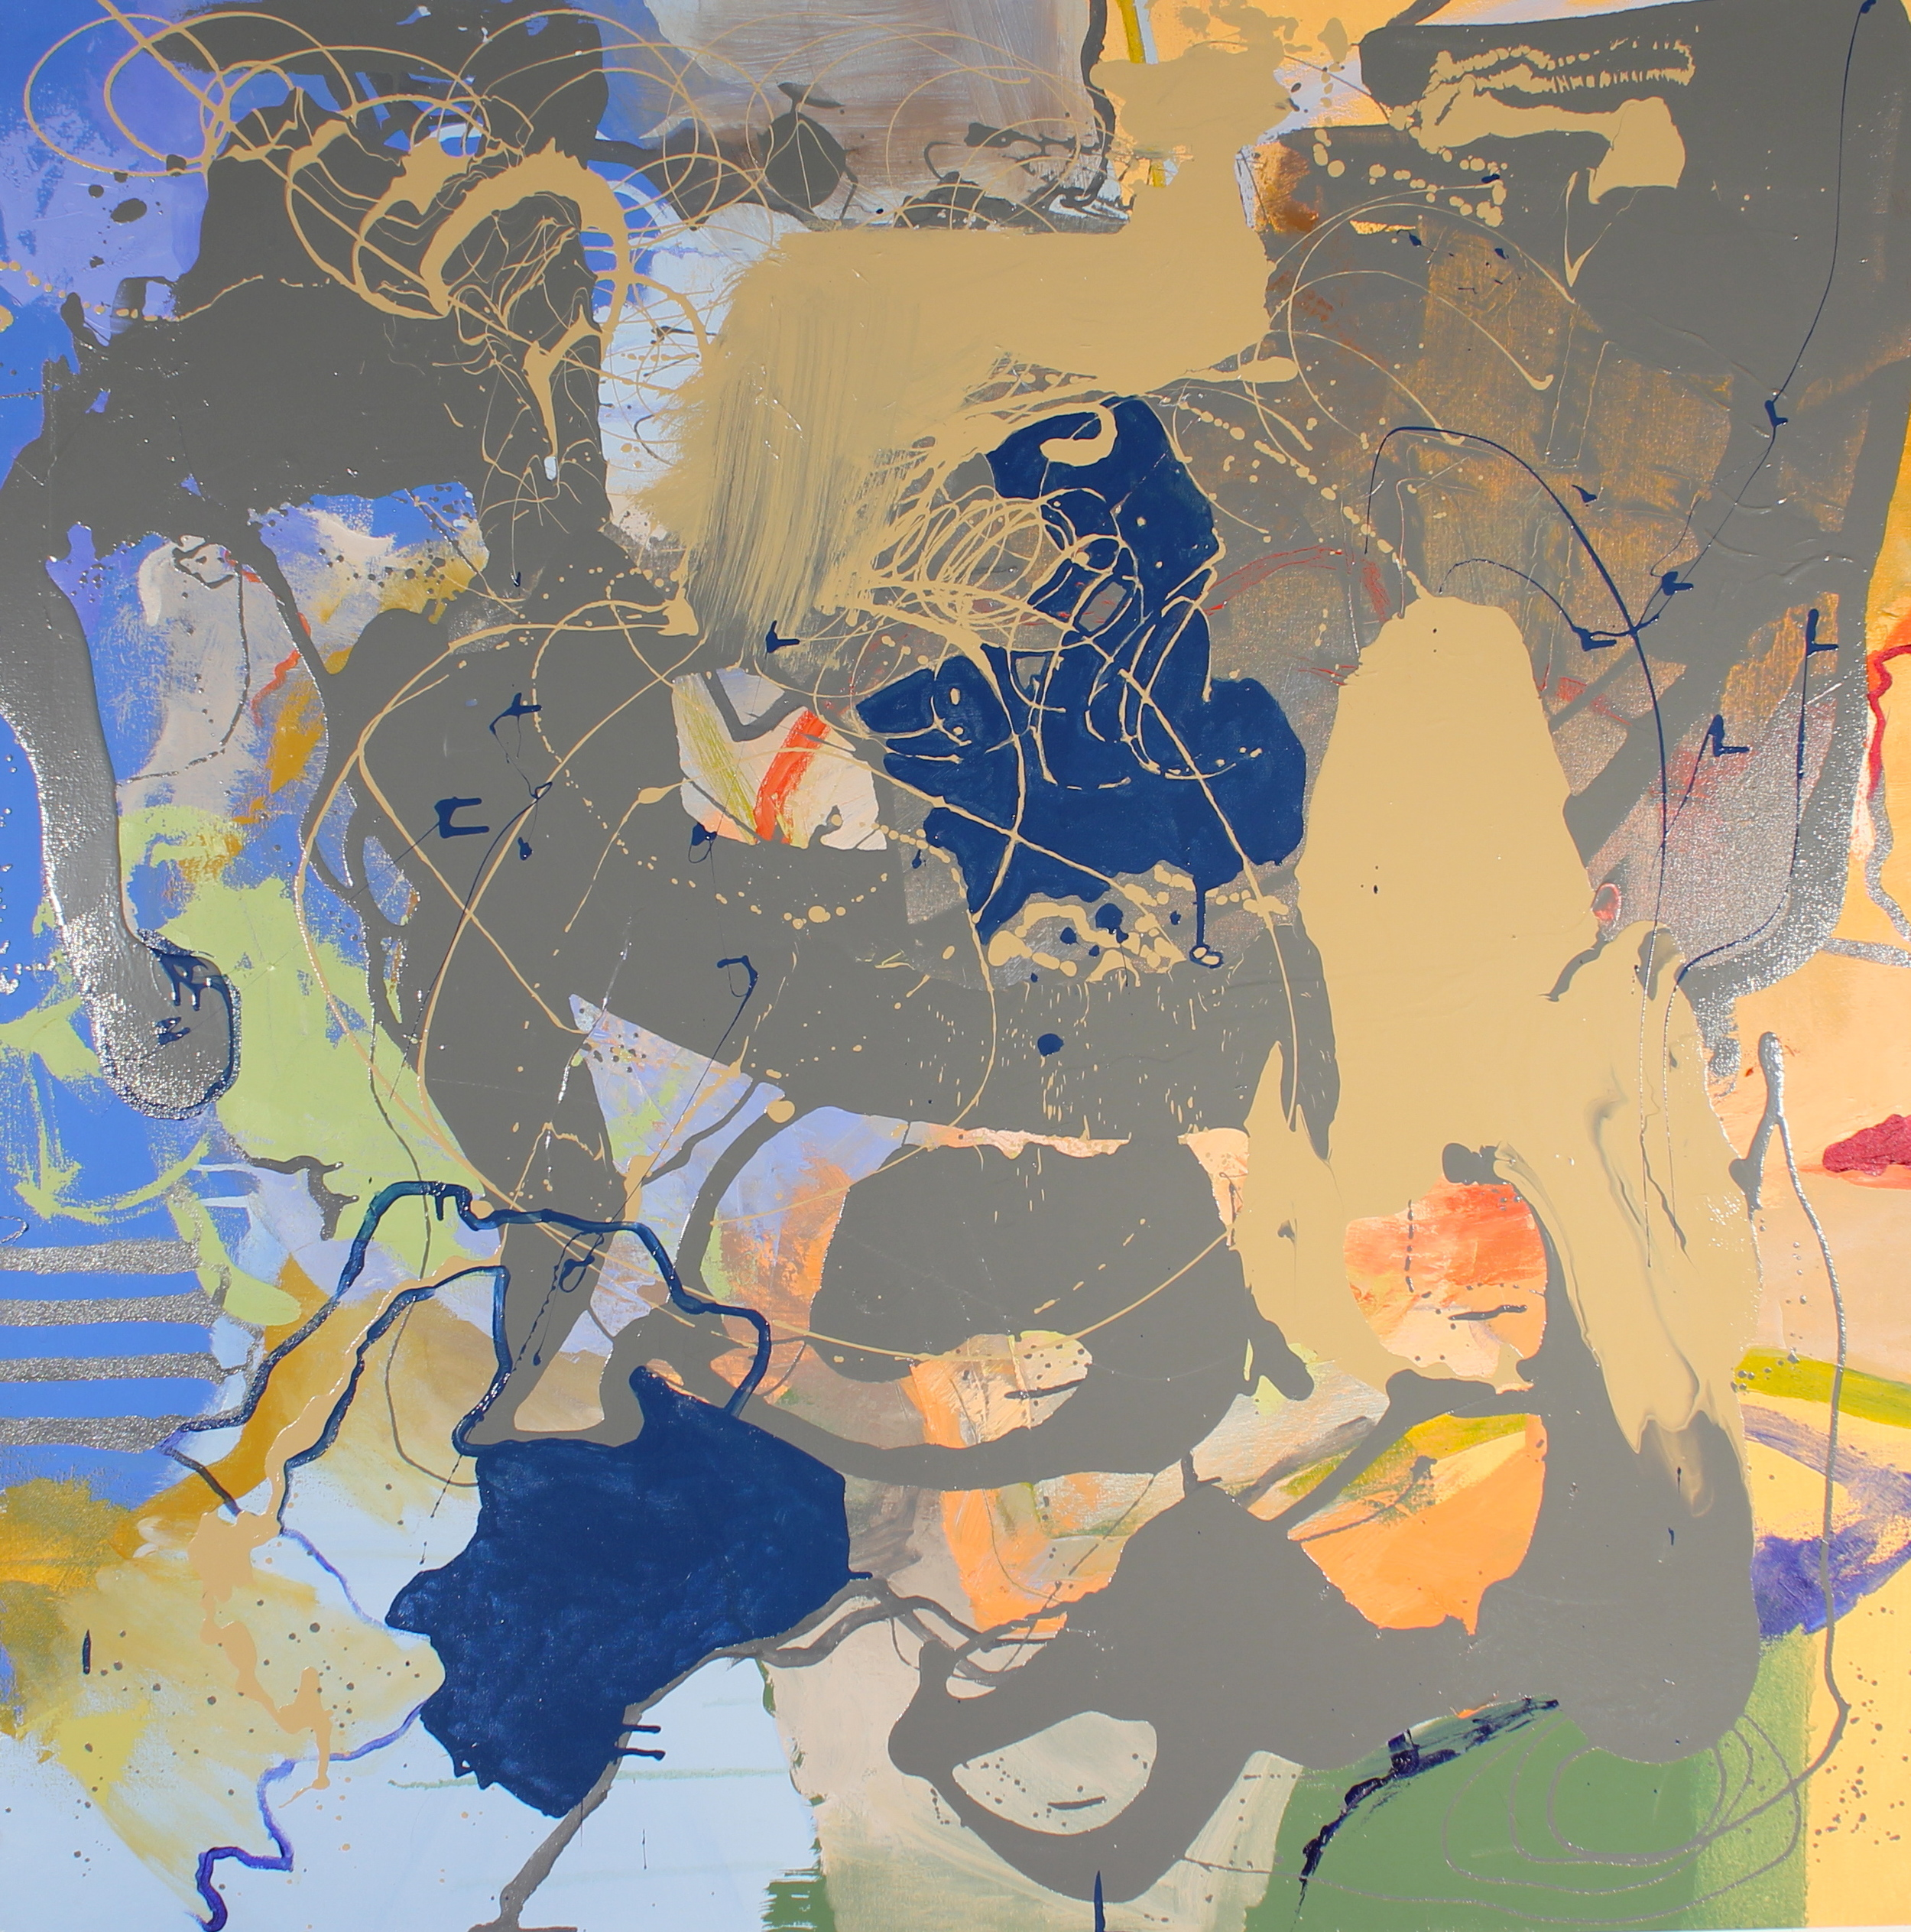 "Untitled   acrylic, oil, and enamel on canvas  48"" X 48""  $750   *Featured in the 68th annual Student Juried Art Exhibition in the Ewing Gallery at the University of Tennessee Knoxville, Knoxville, TN."